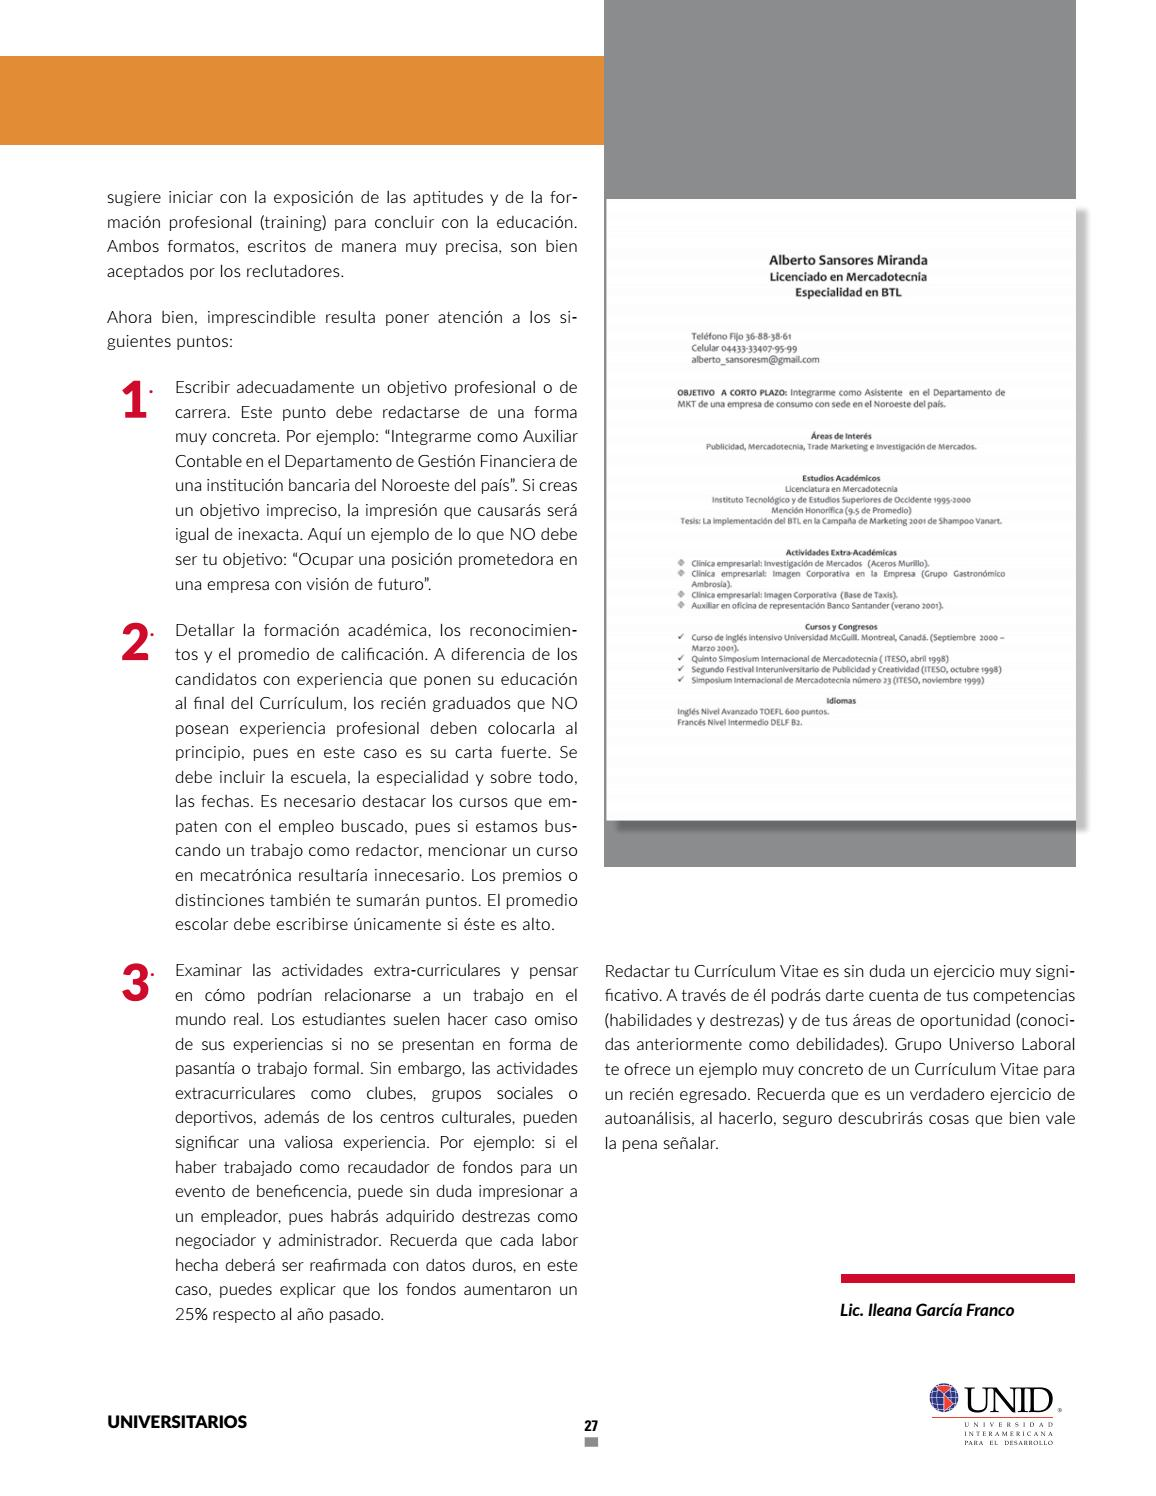 Guía de éxito profesional UNID by RedUNID - issuu